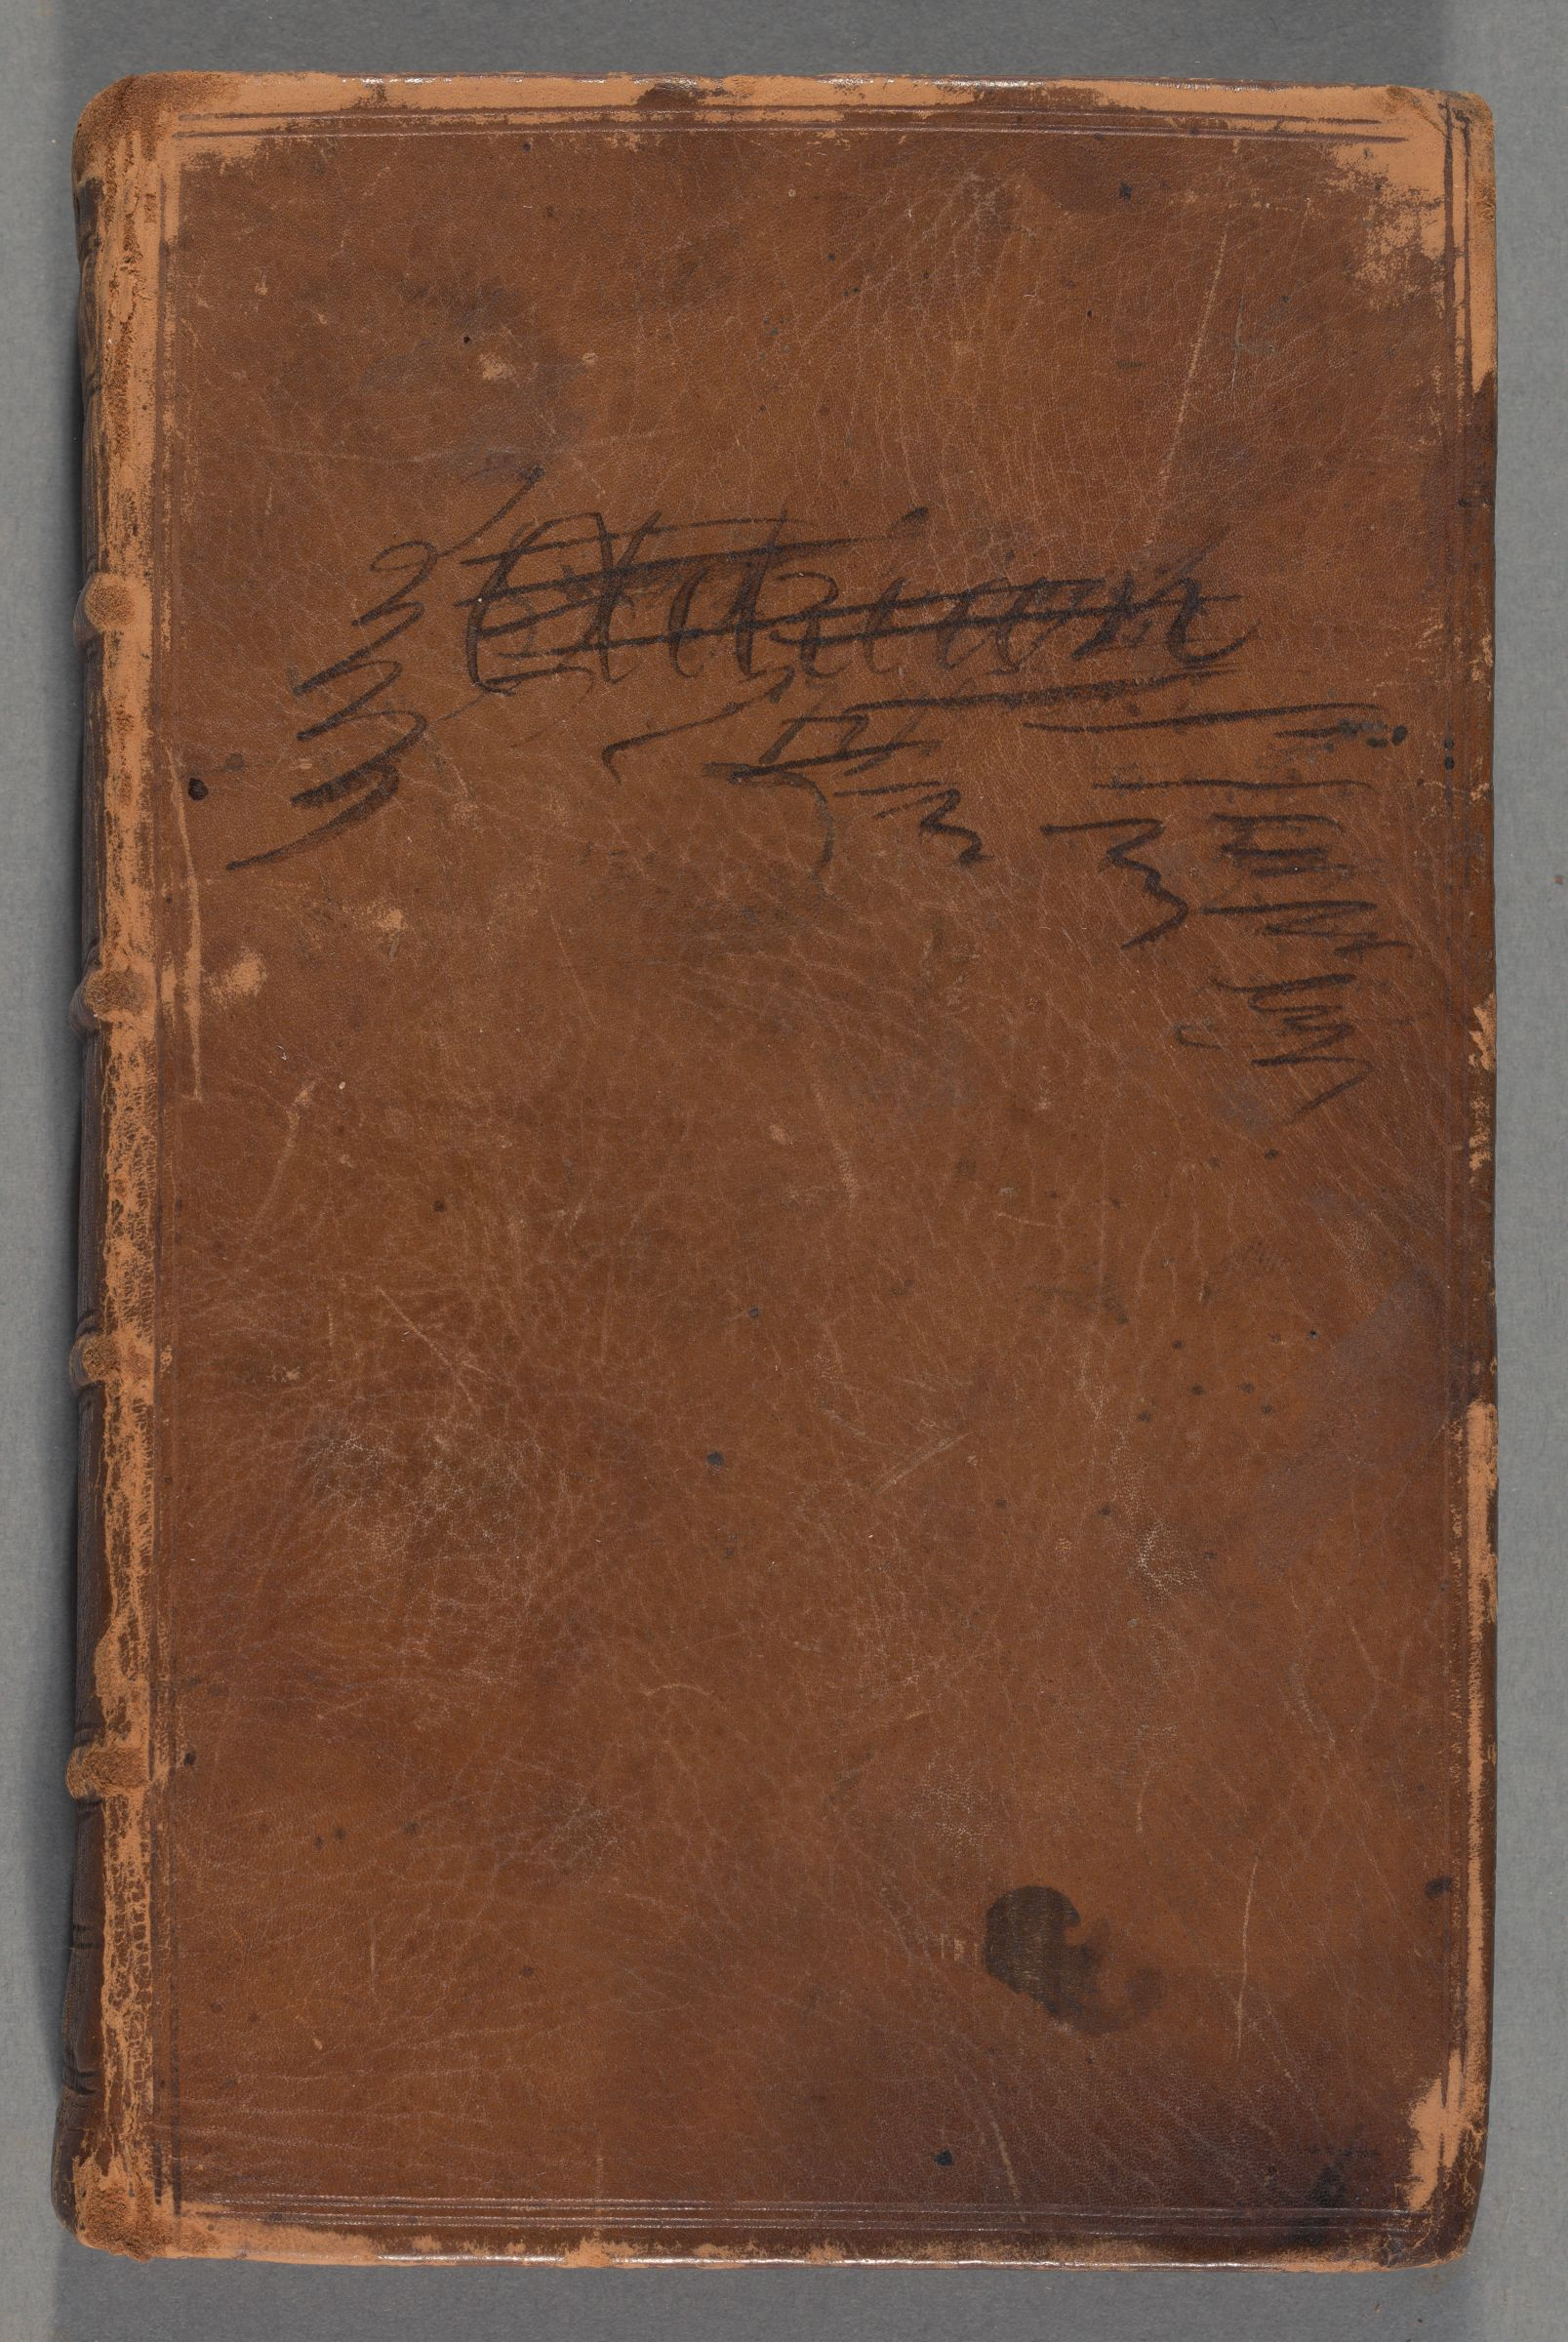 Commonplace book of Benjamin Penhallow, 1721-1724